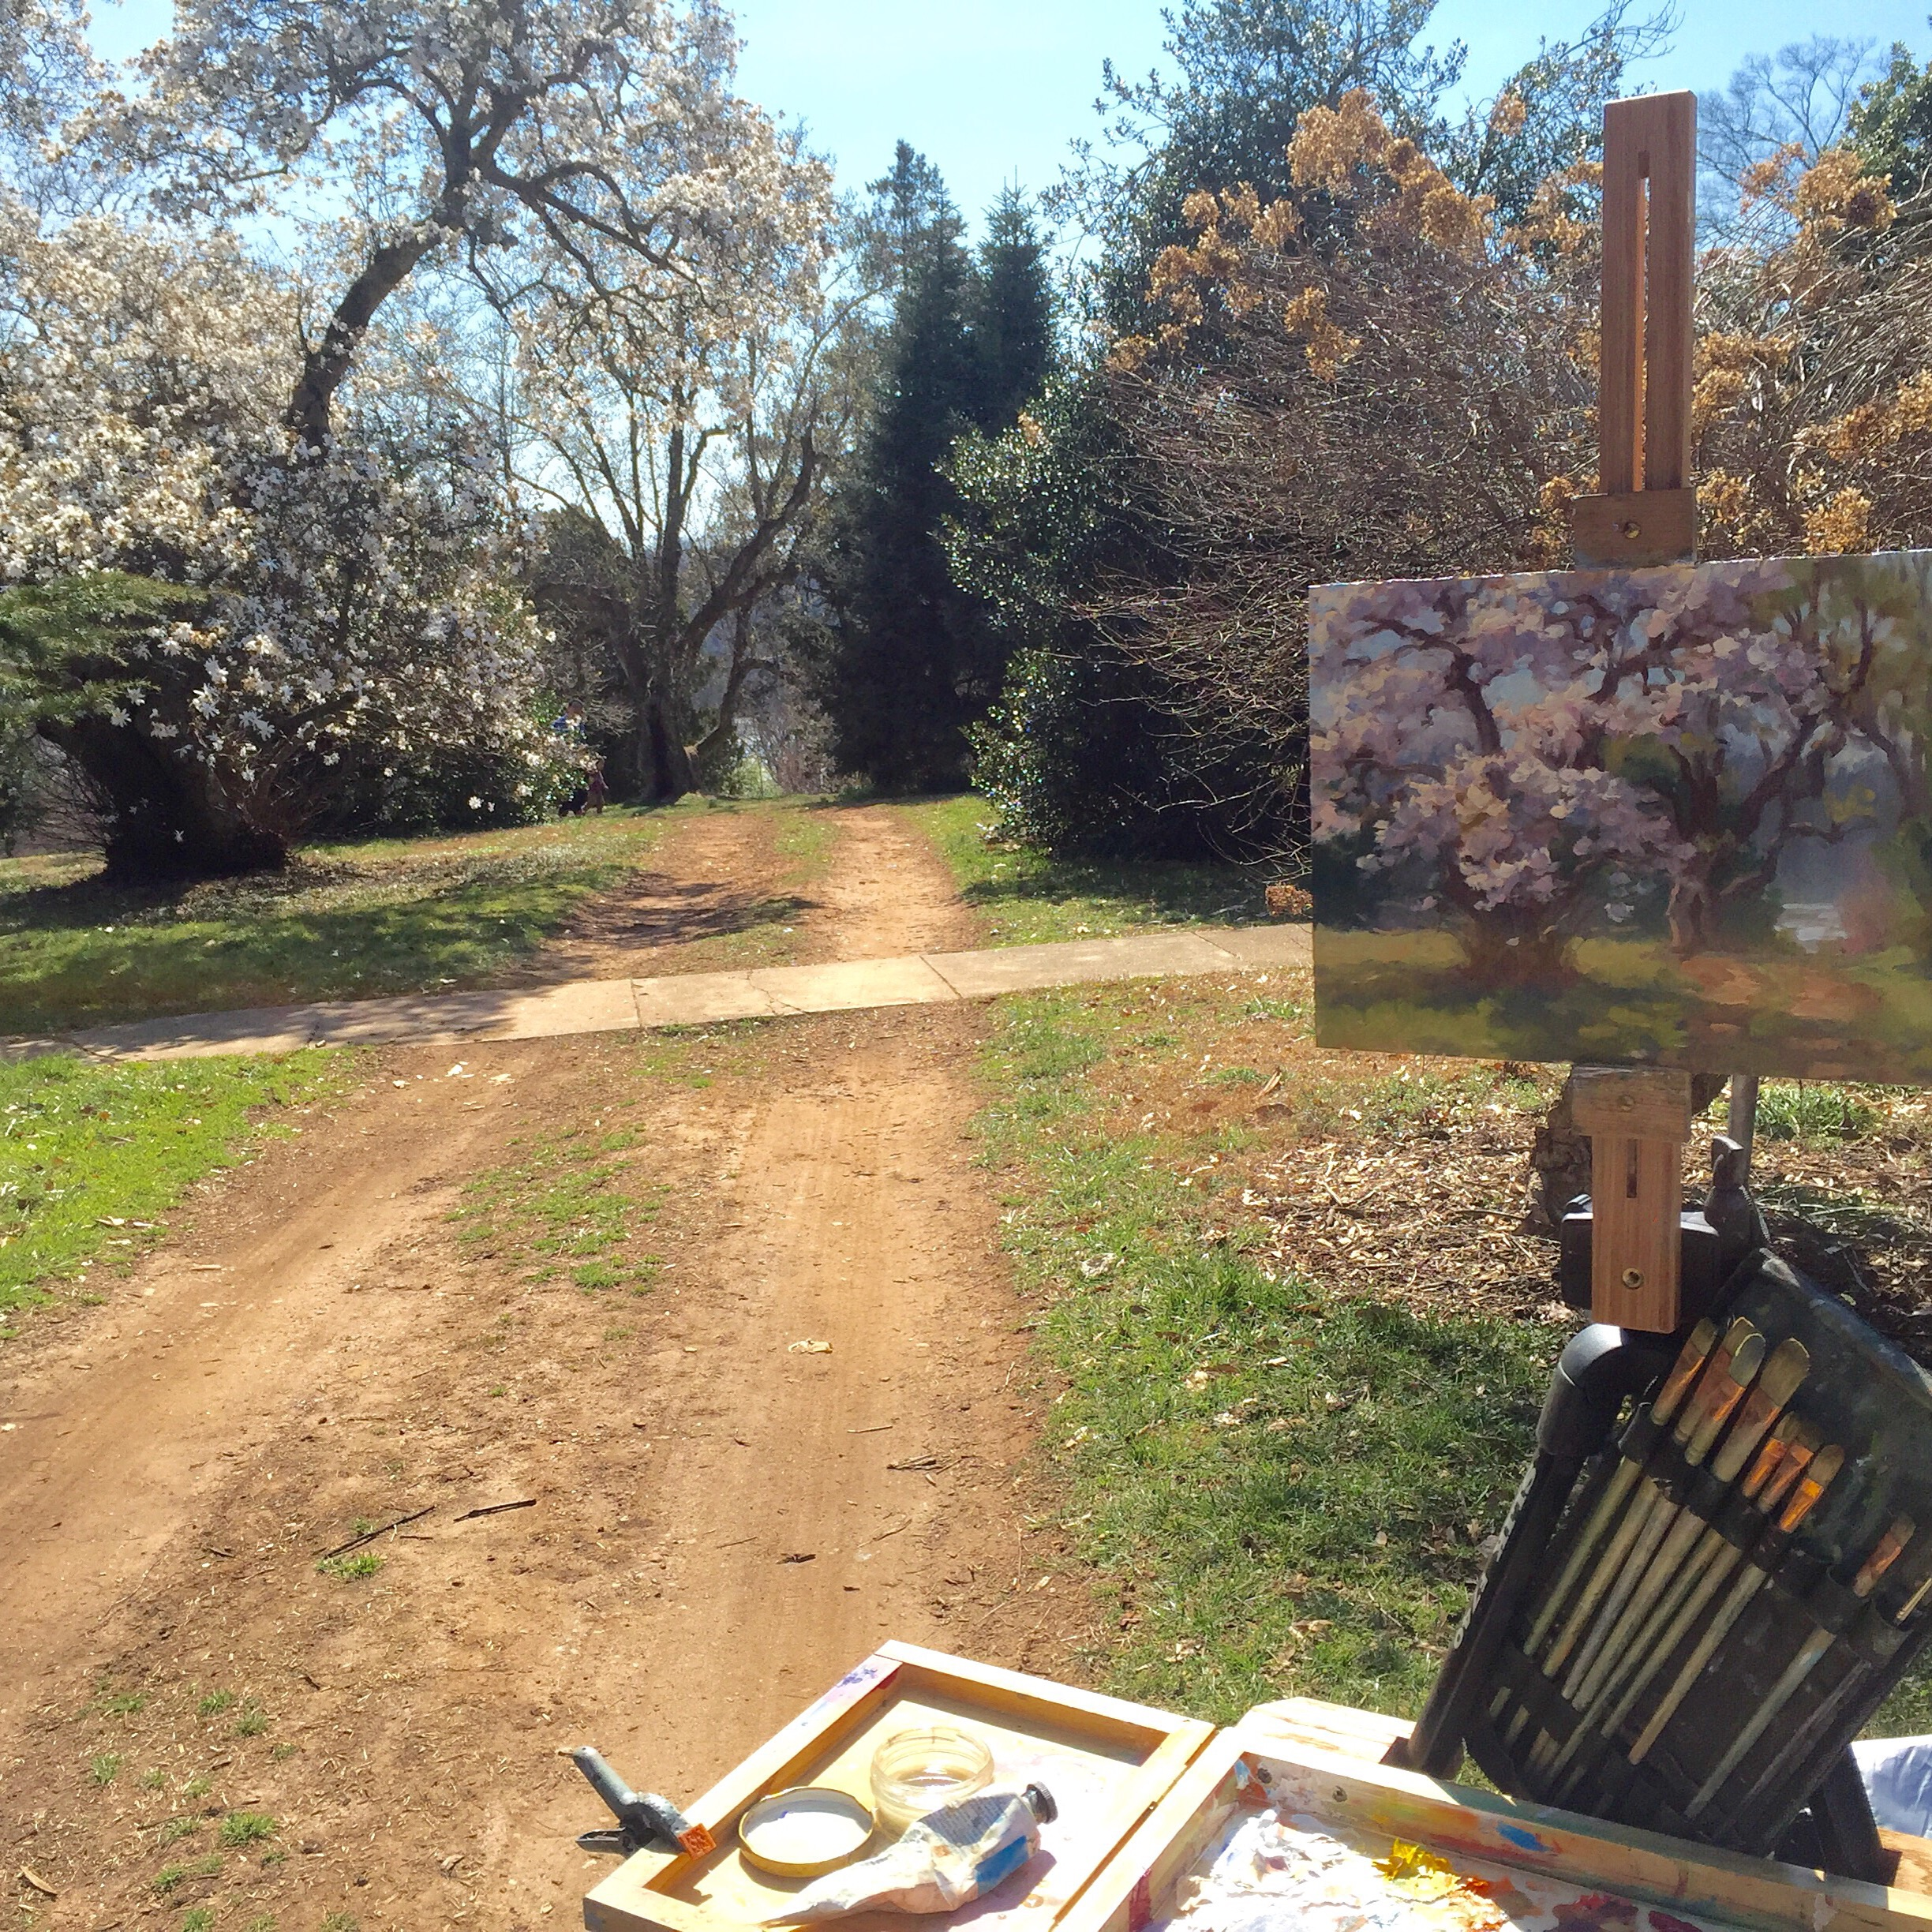 My plein air painting in process